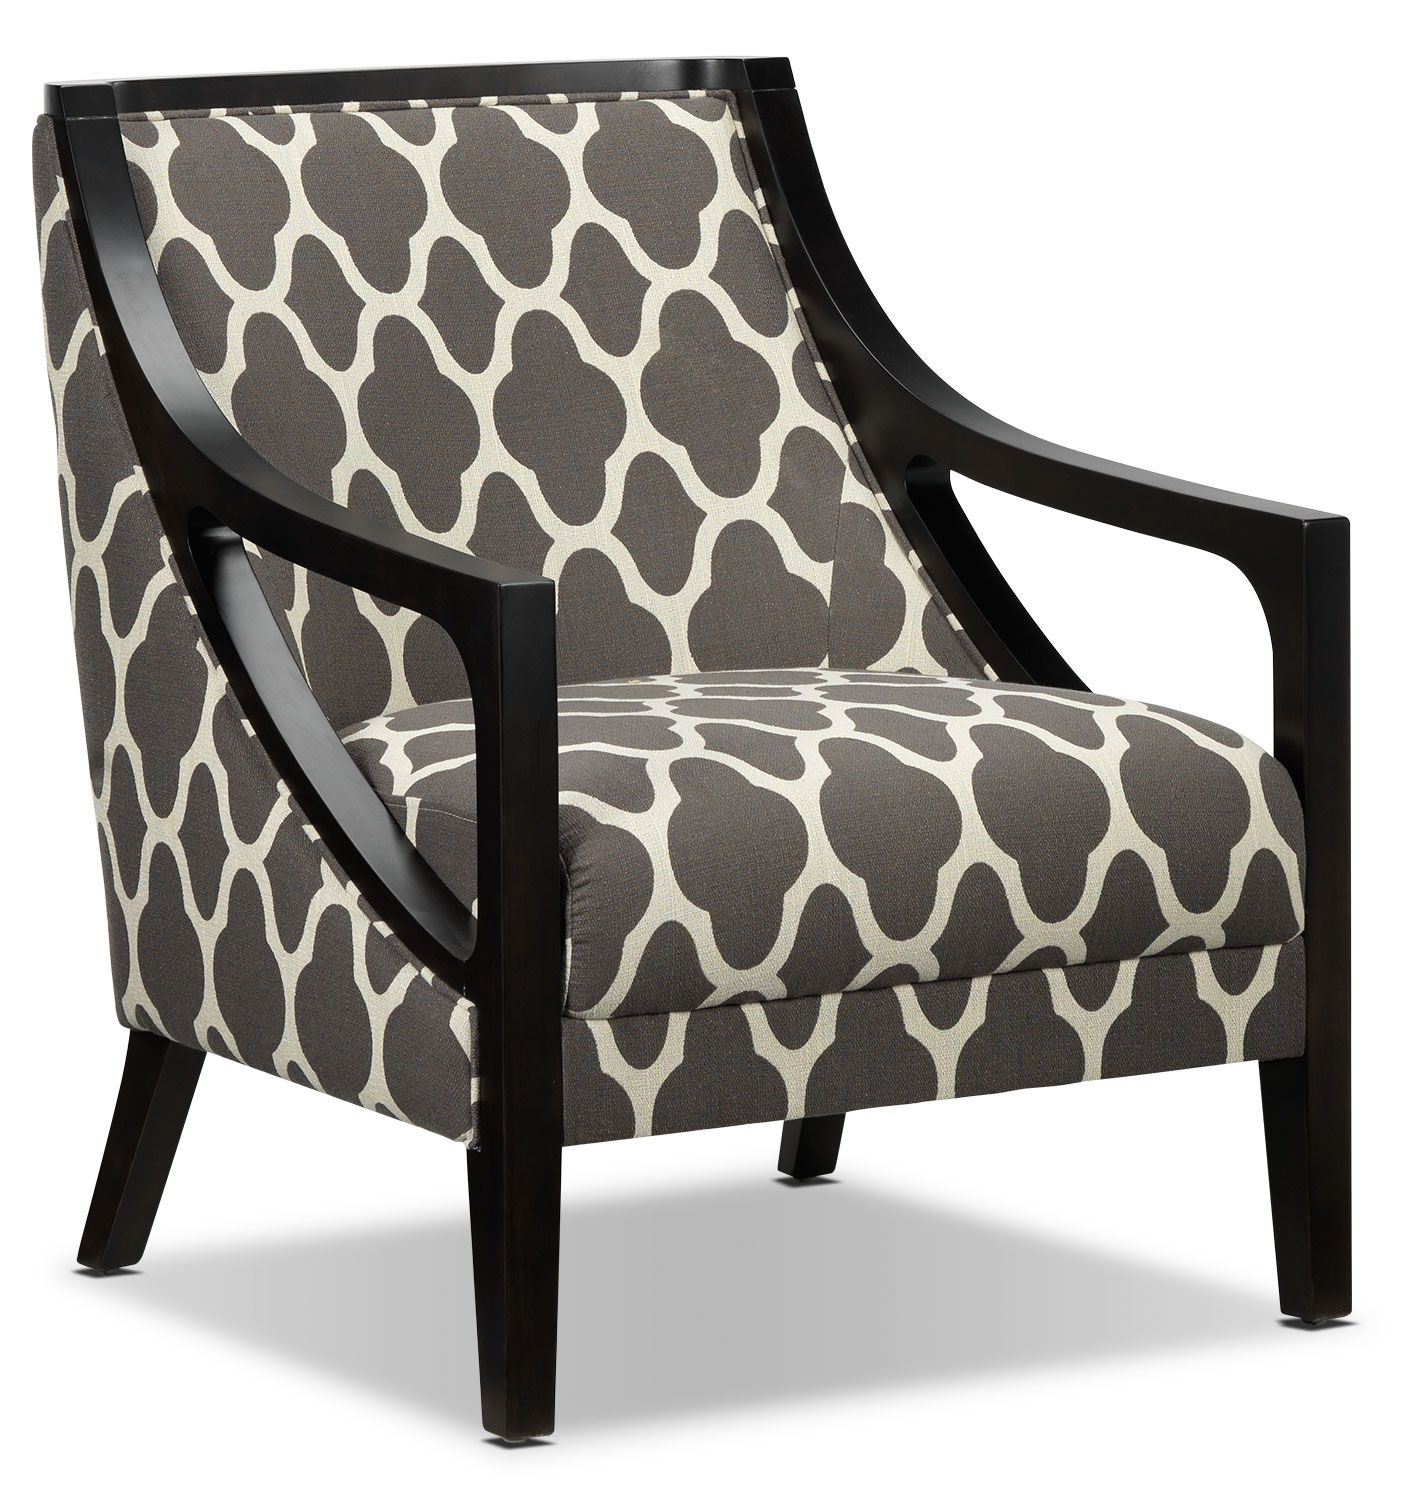 Pattern Of Elegance. The Minera Accent Chairu0027s Thoughtful Design And Elegant  Pattern Add Contemporary Interest